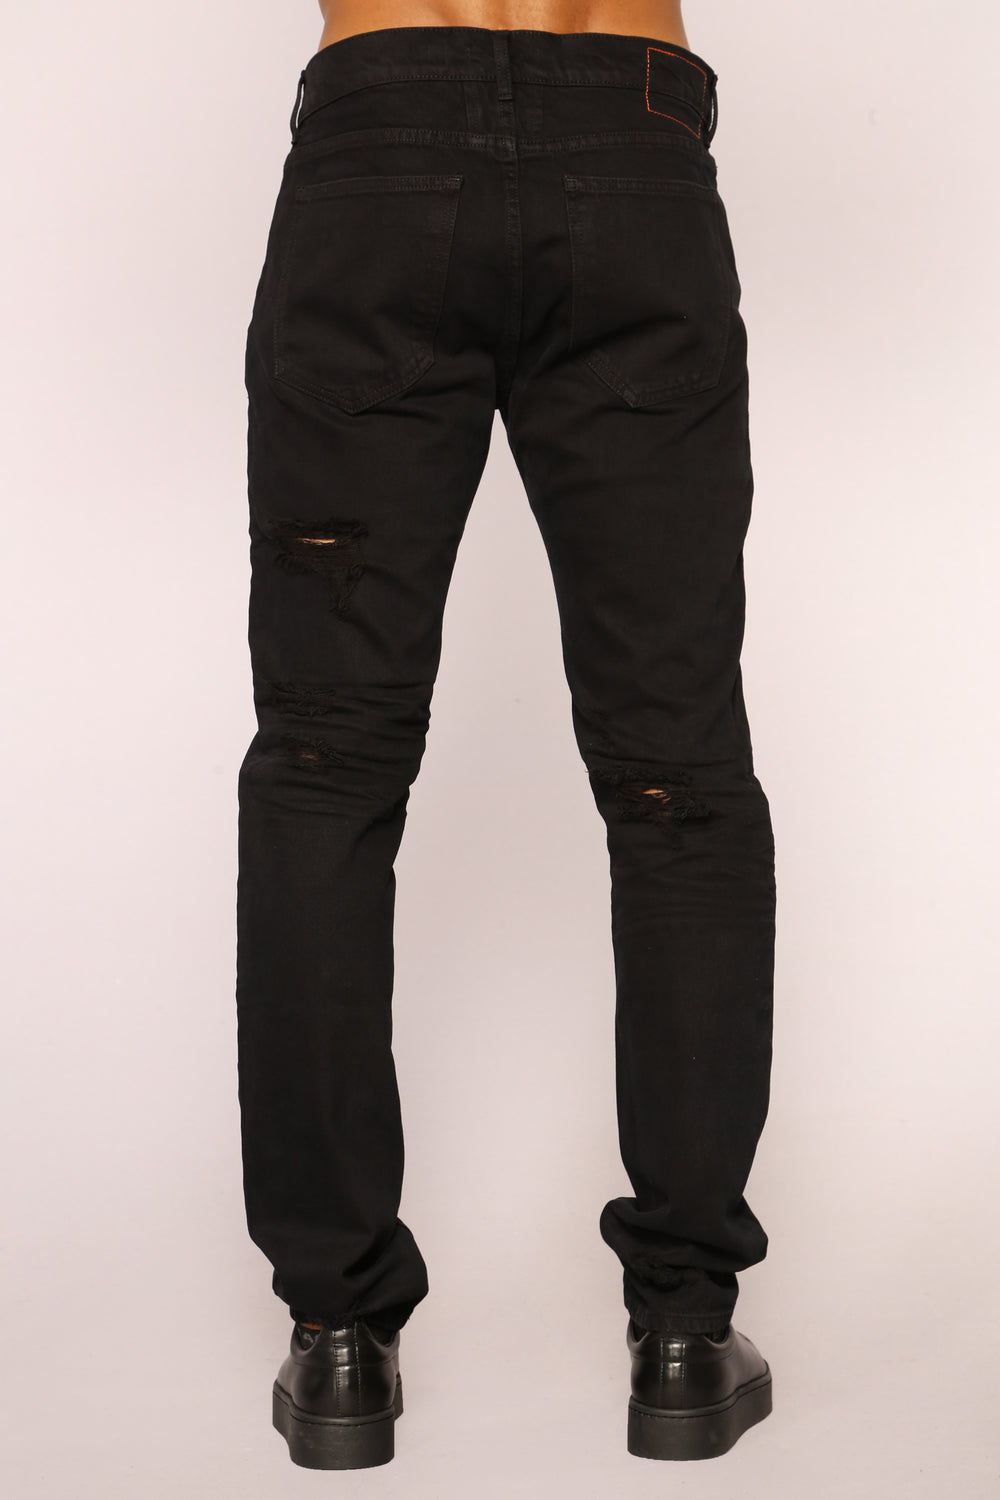 Jiggy Slim Jeans - Black